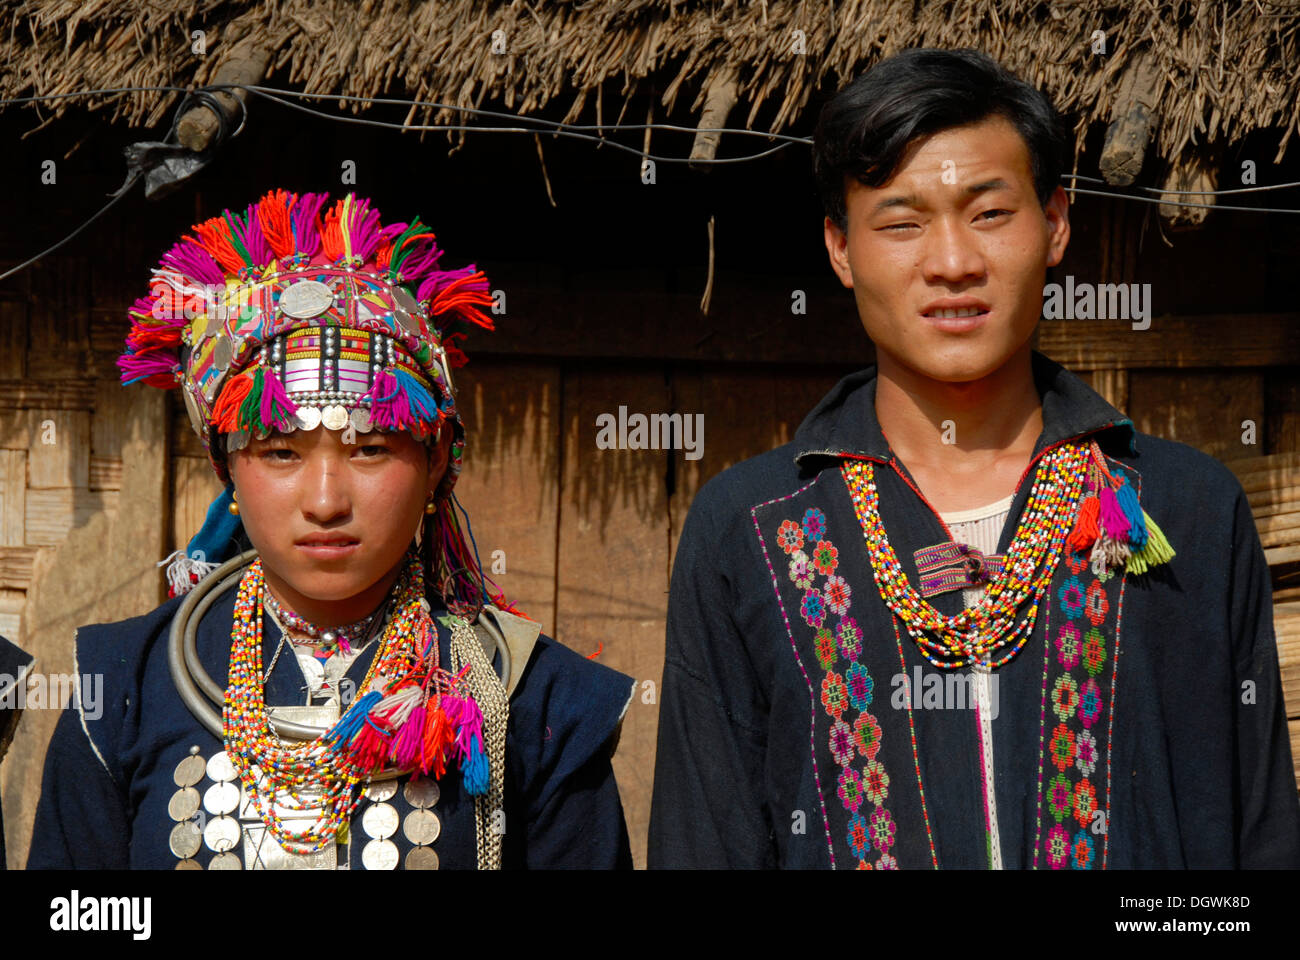 Portrait, woman and man of the Akha Loma ethnic group, colorful traditional clothing, traditional costume, Ban Noy - Stock Image